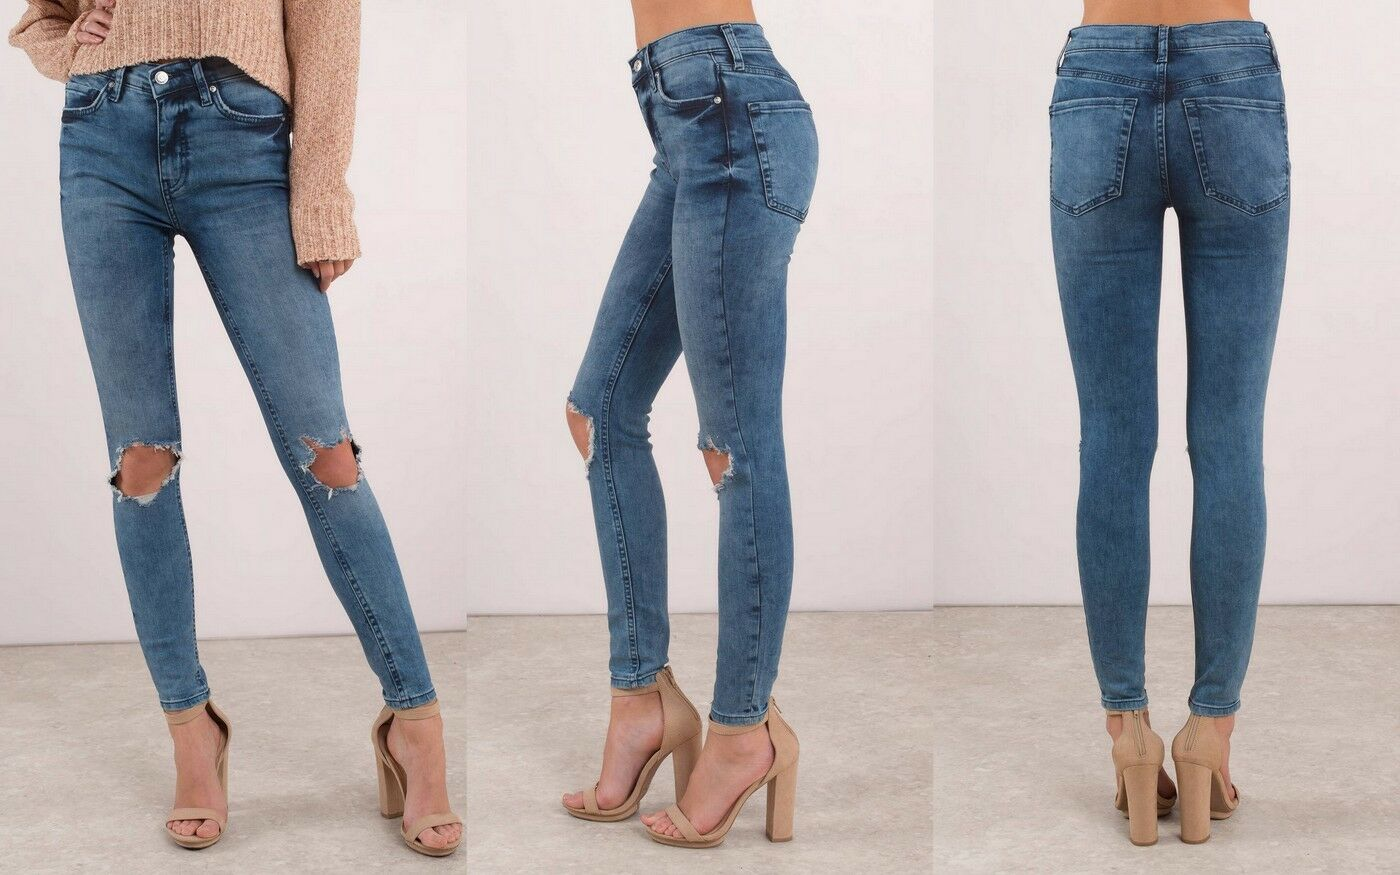 Free People Women's High Rise Busted Knee Skinny Jeans, Turquoise, Size 31R